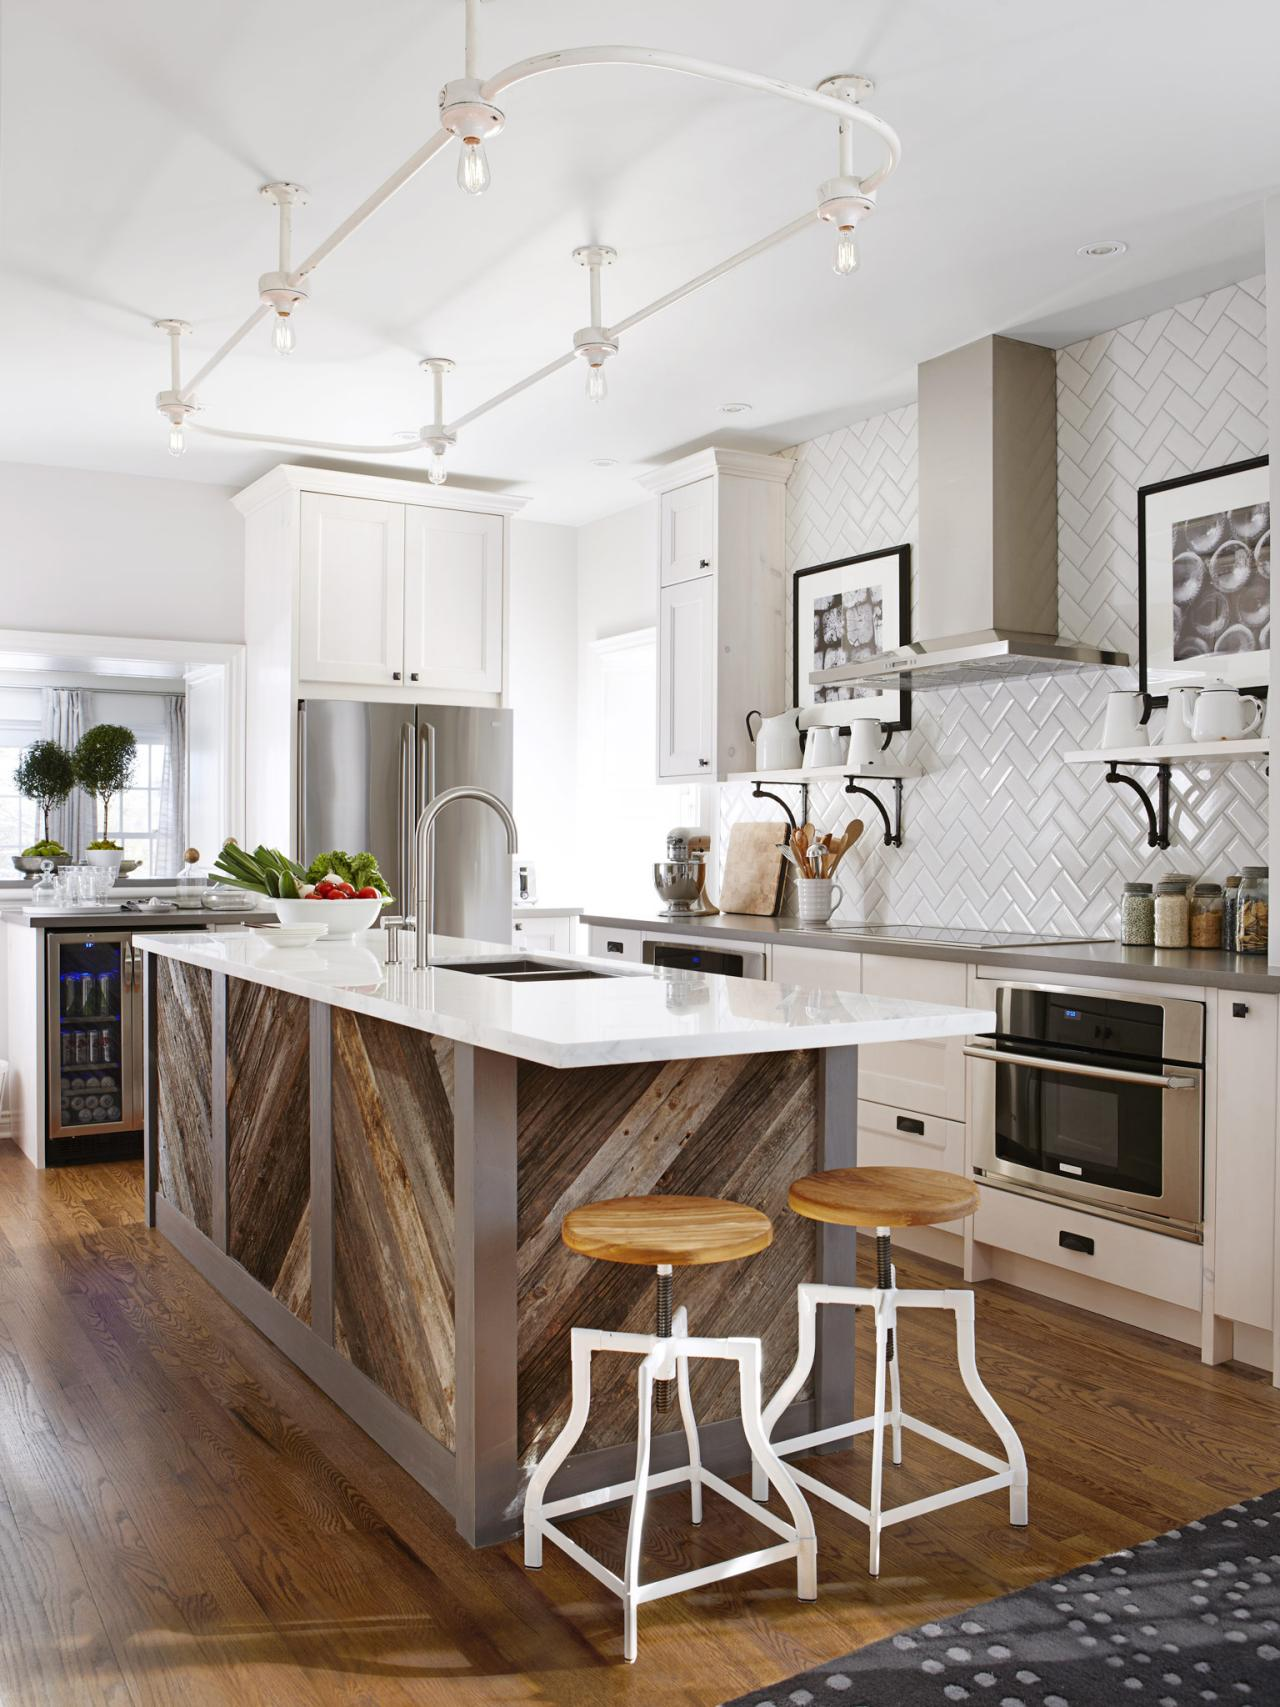 Our 50 Favorite White Kitchens Kitchen Ideas amp Design